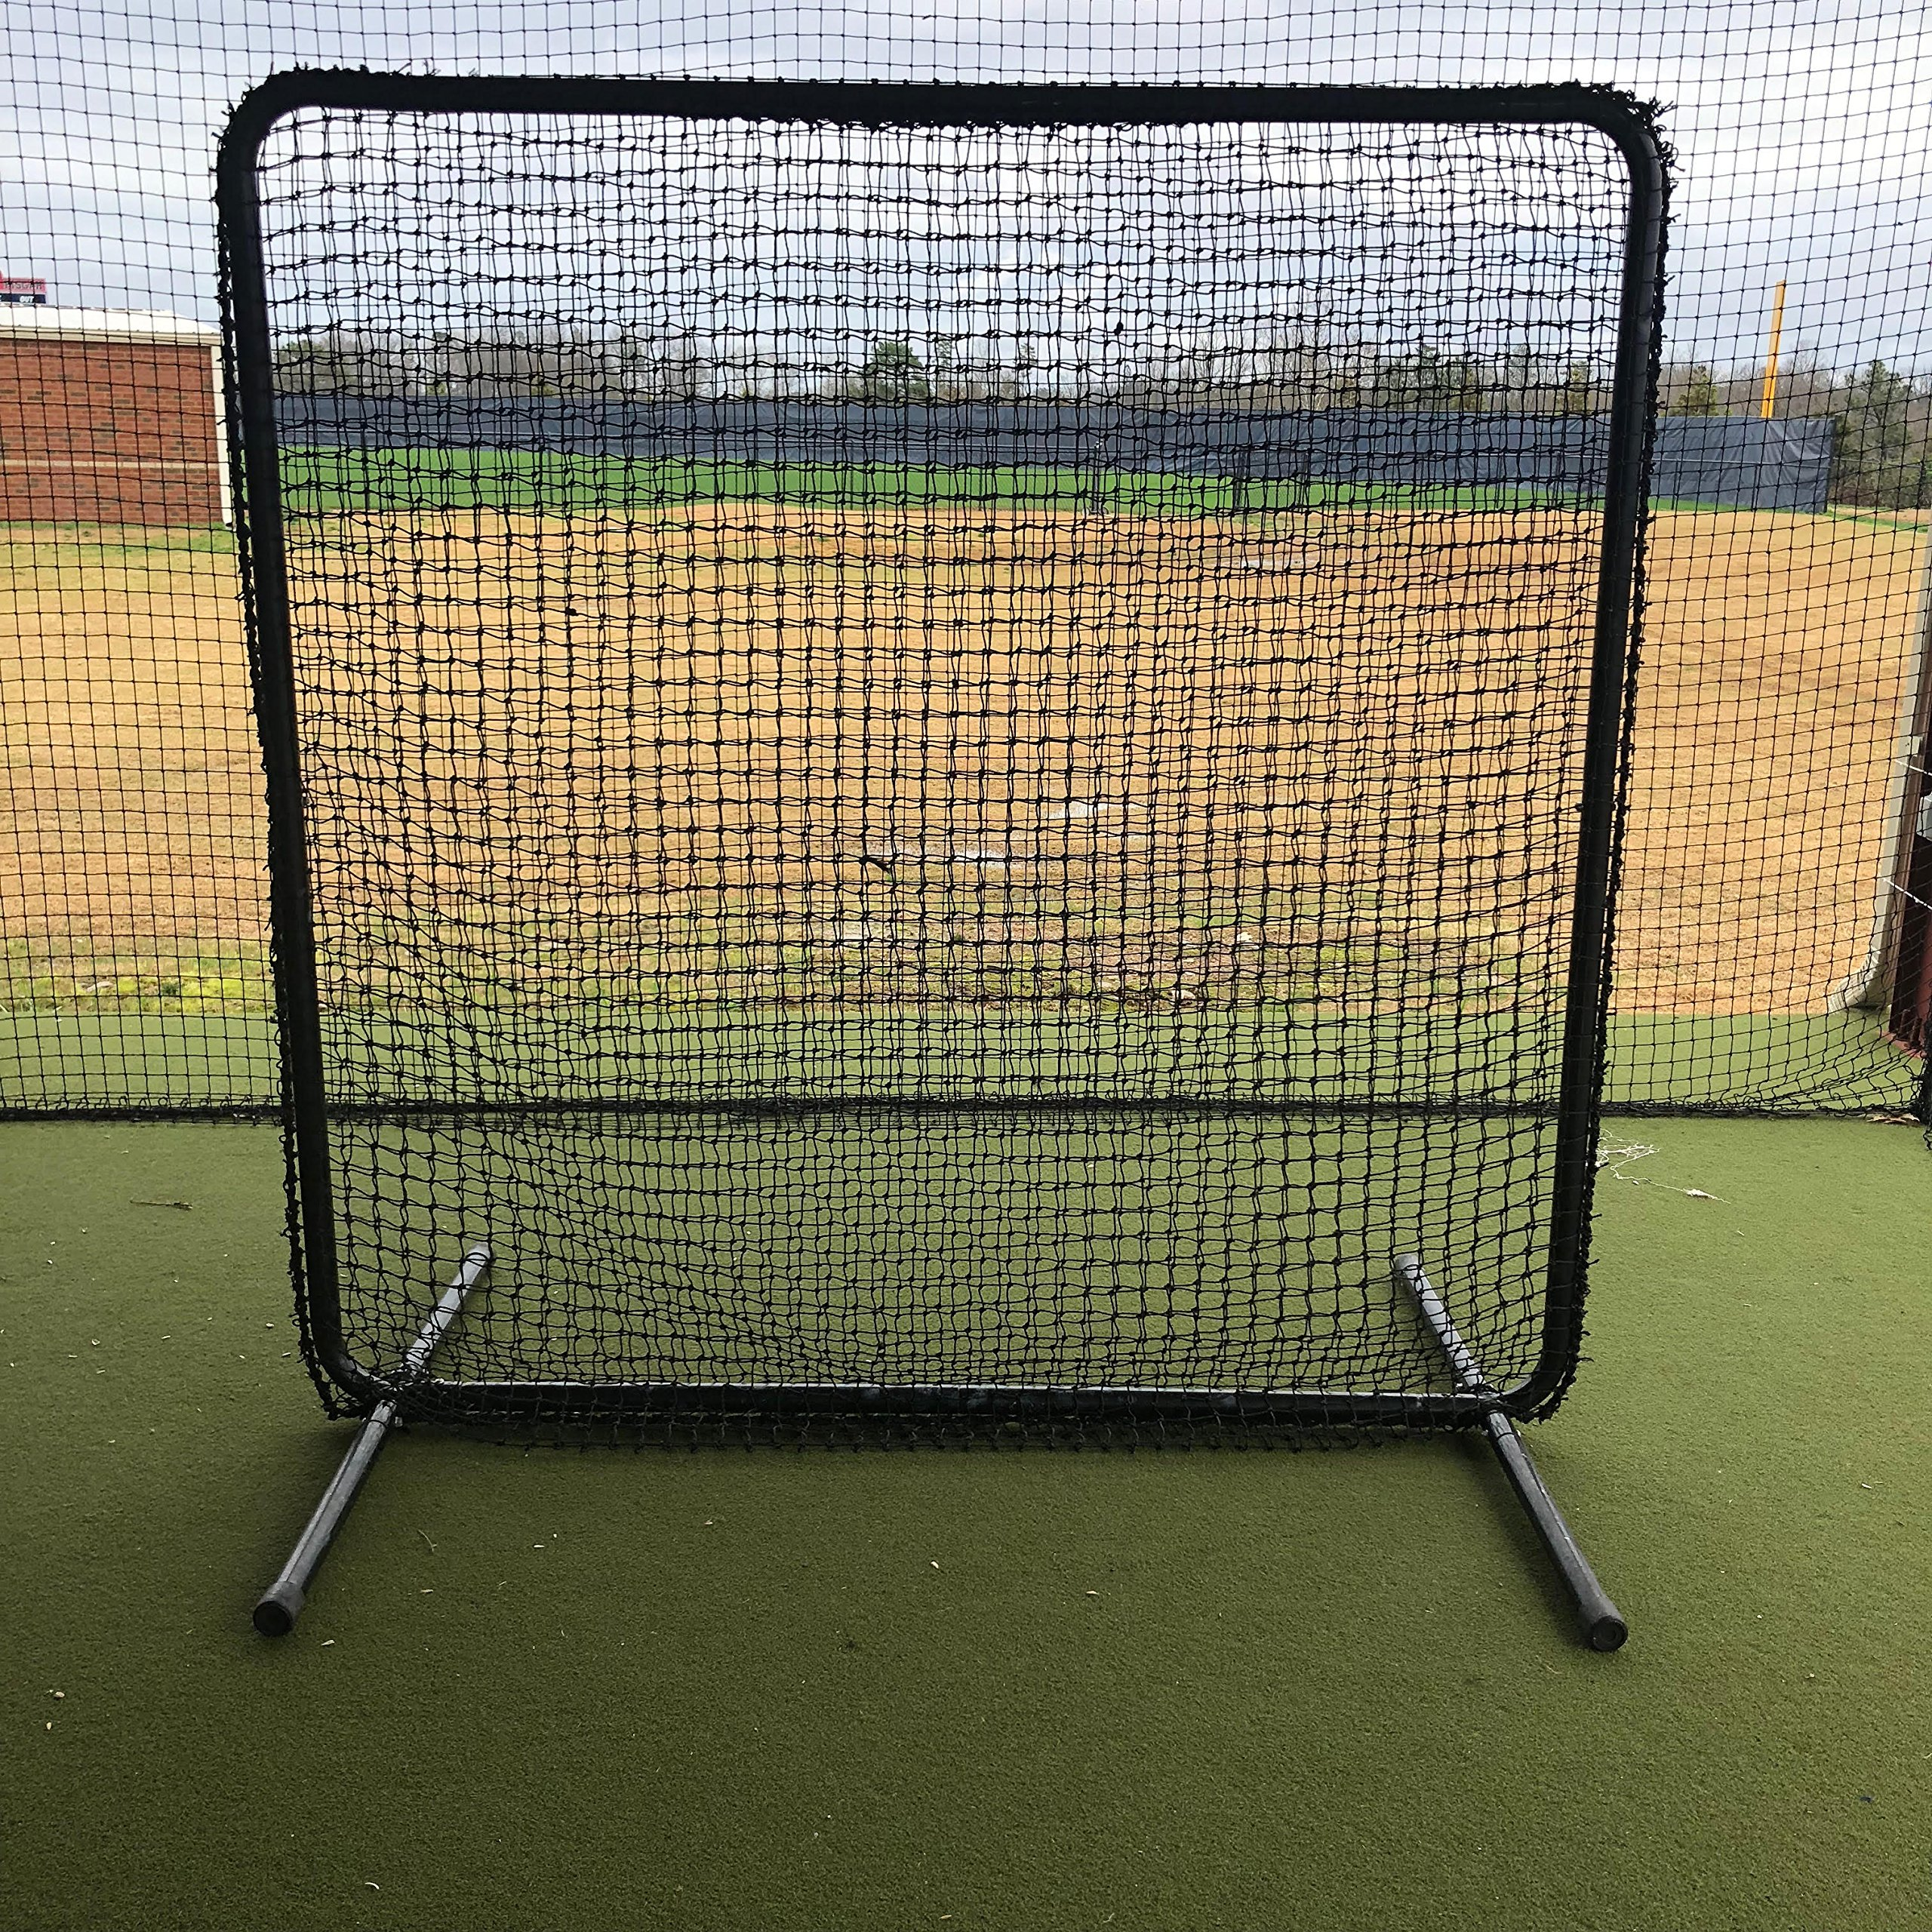 GAMERS SPORTS GROUP Baseball Field Screen 7'x7' 1 5/8'' OD 16 Gauge Steel and 60 Gauge HDPE NET by GAMERS SPORTS GROUP